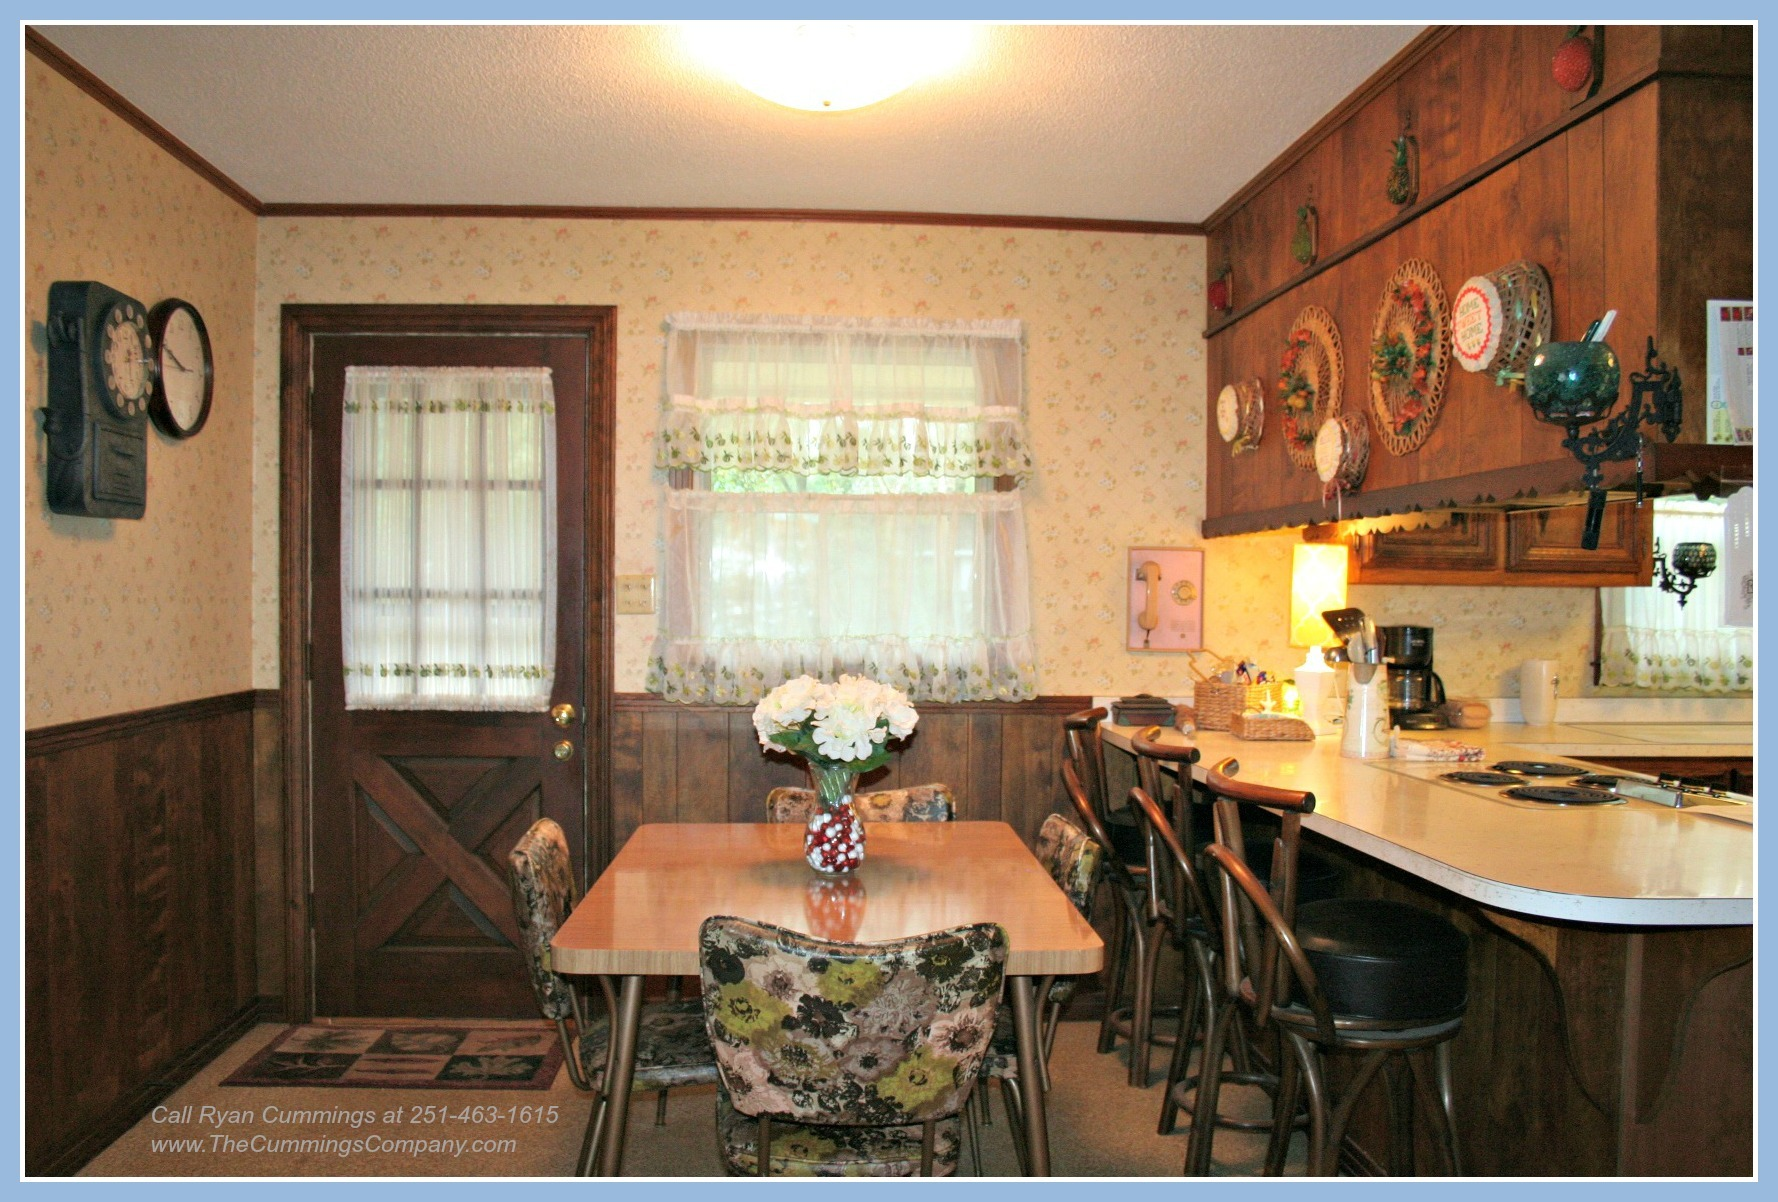 Mobile AL homes for sale with Breakfast Bar